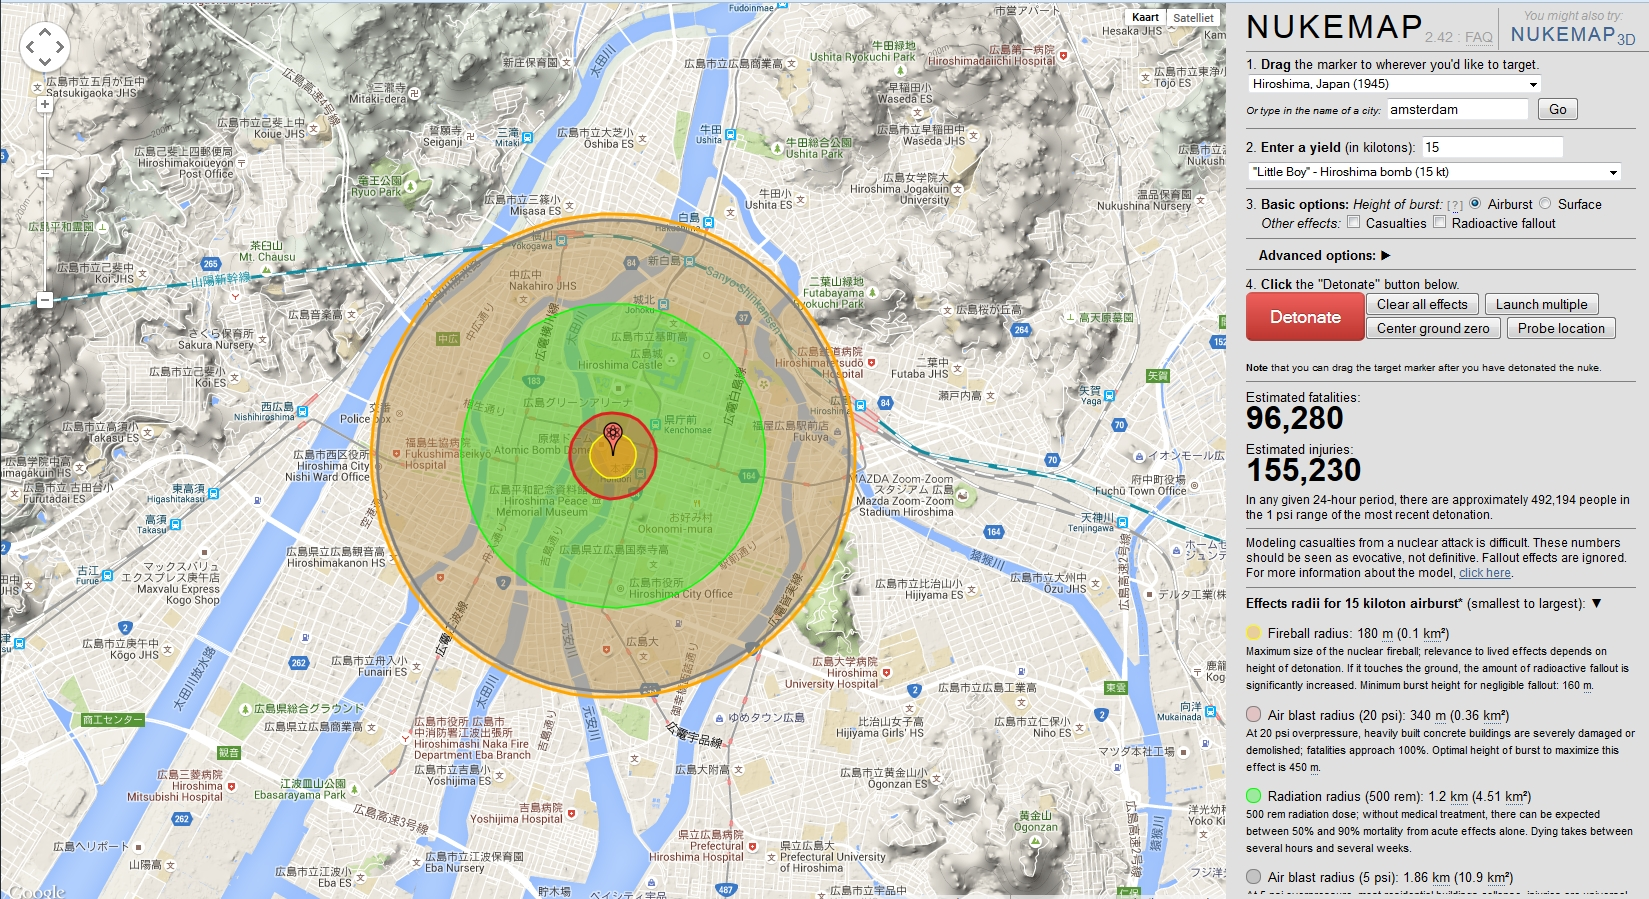 How would a nuclear bomb affect your area